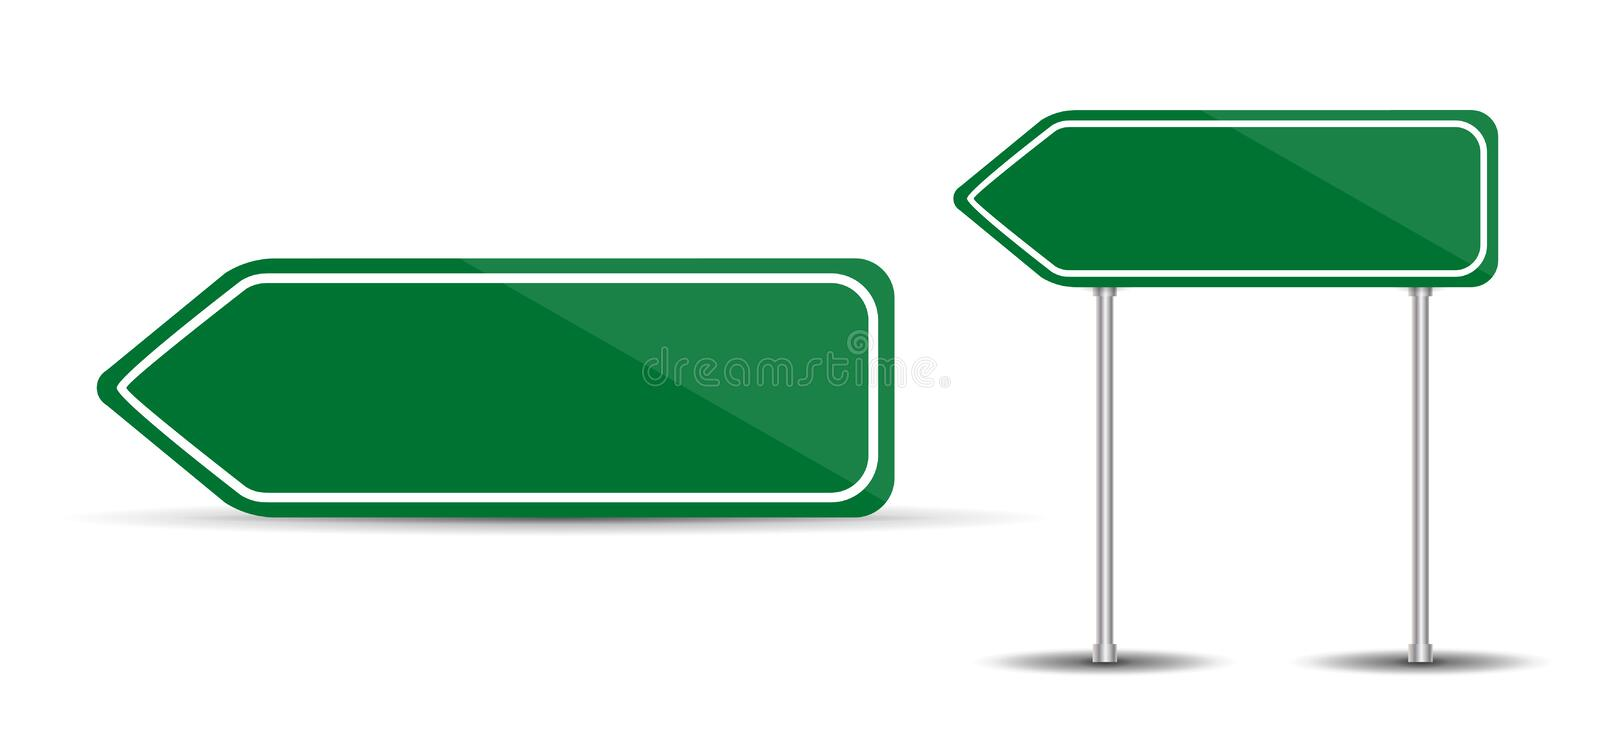 Road Sign Isolated on White Background Blank green arrow traffic. Vector Illustration. stock illustration